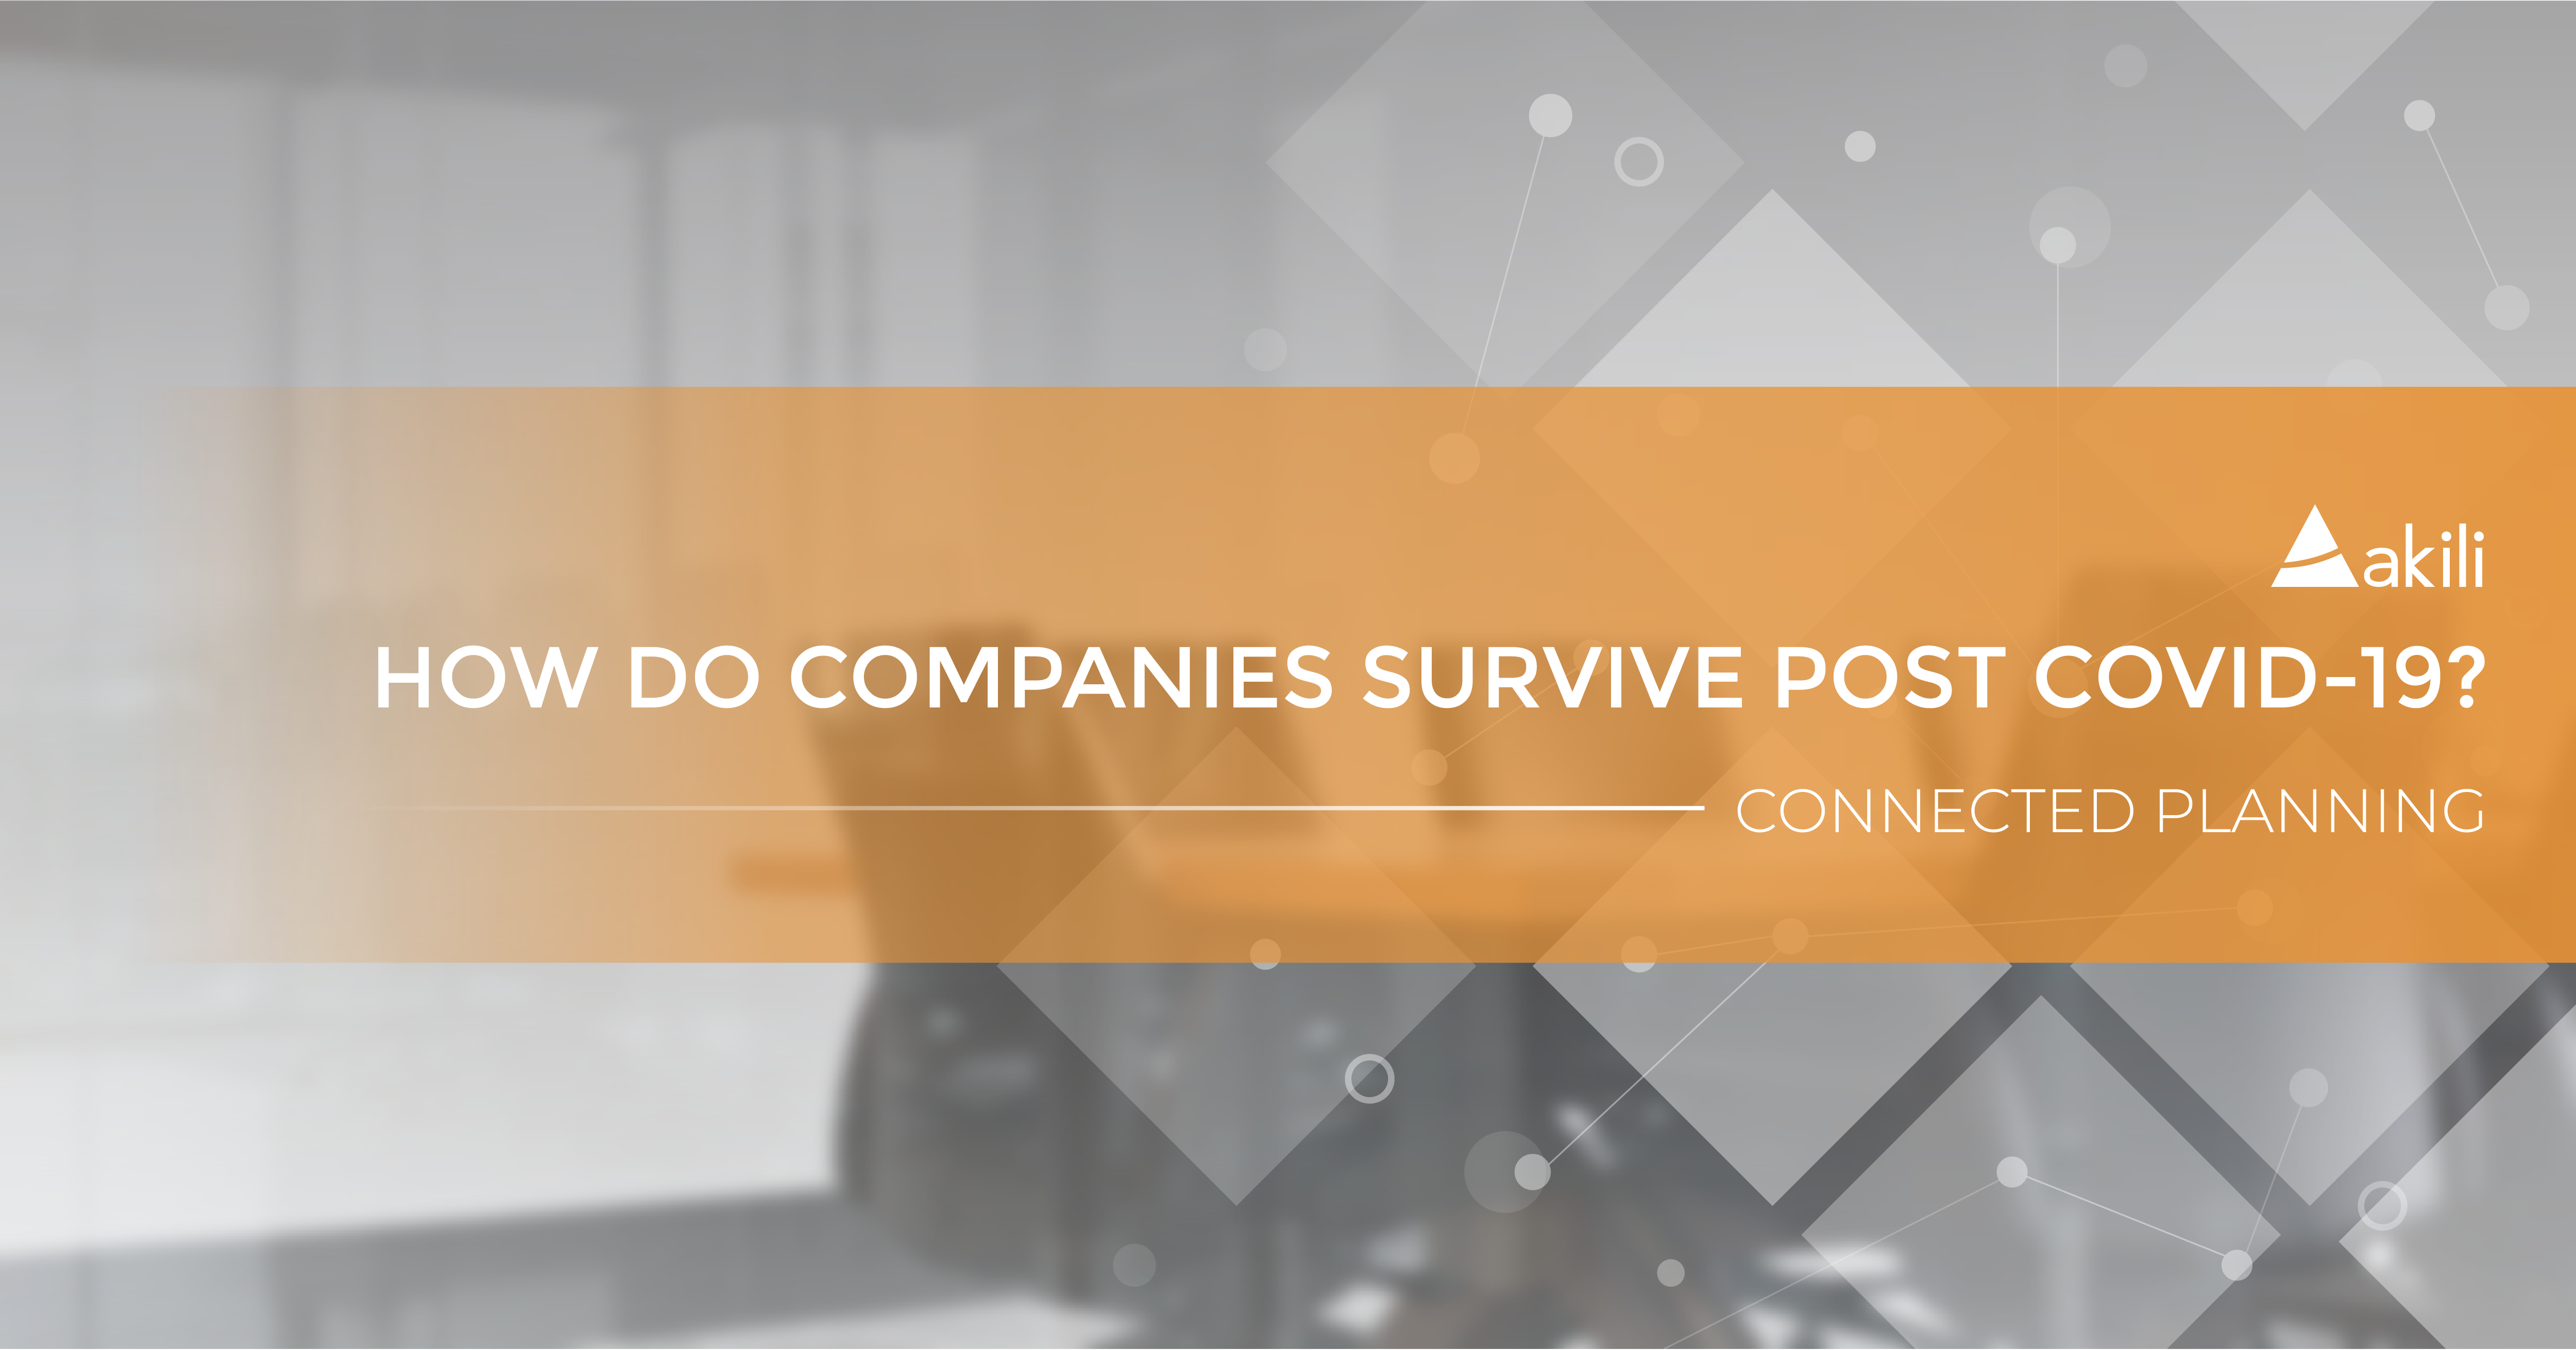 How Do Companies Survive Post COVID-19?